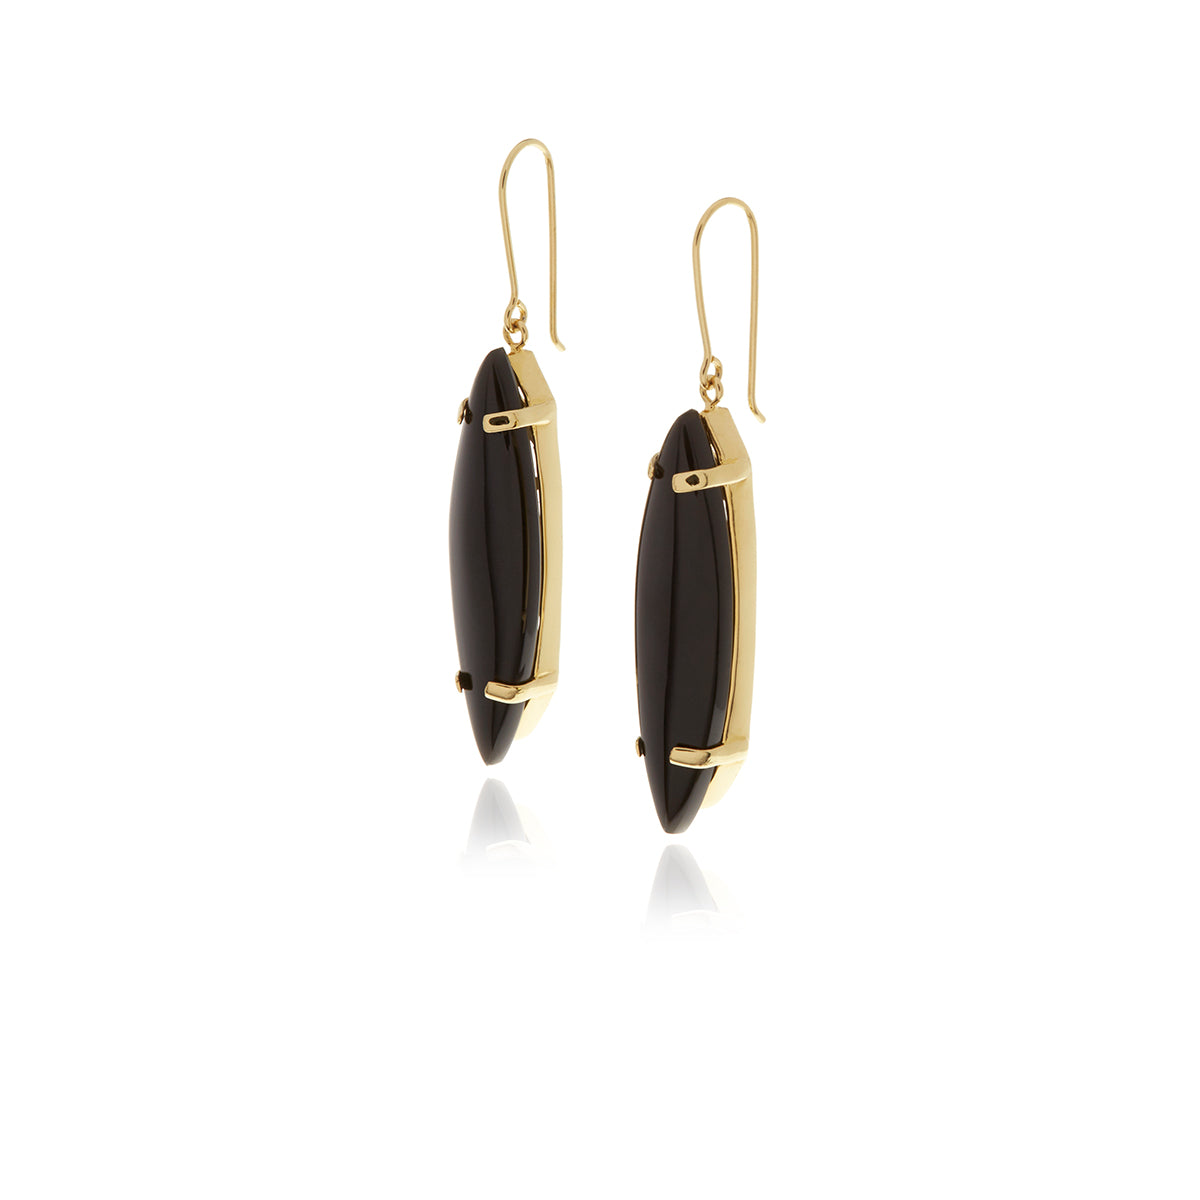 Signature Onyx Earrings - MCK Brands